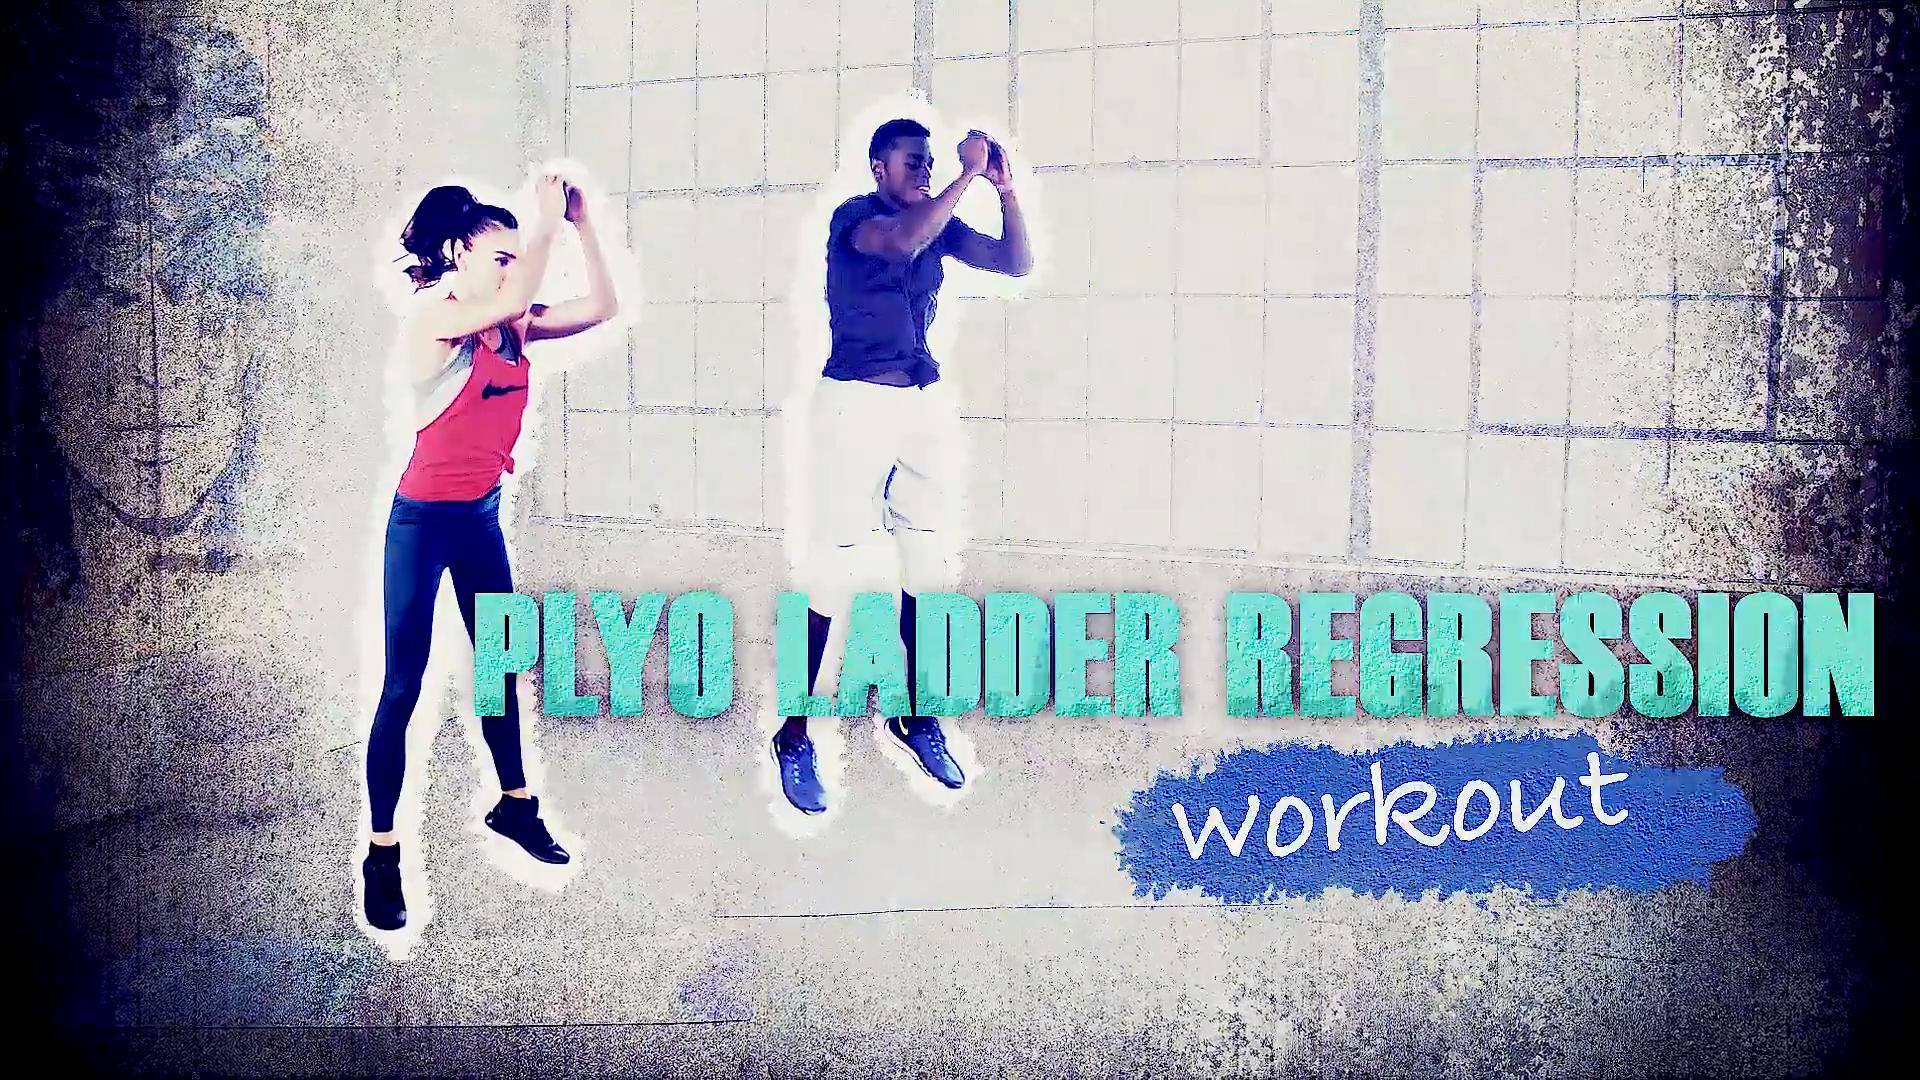 Workout 2: Plyo Ladder Regression